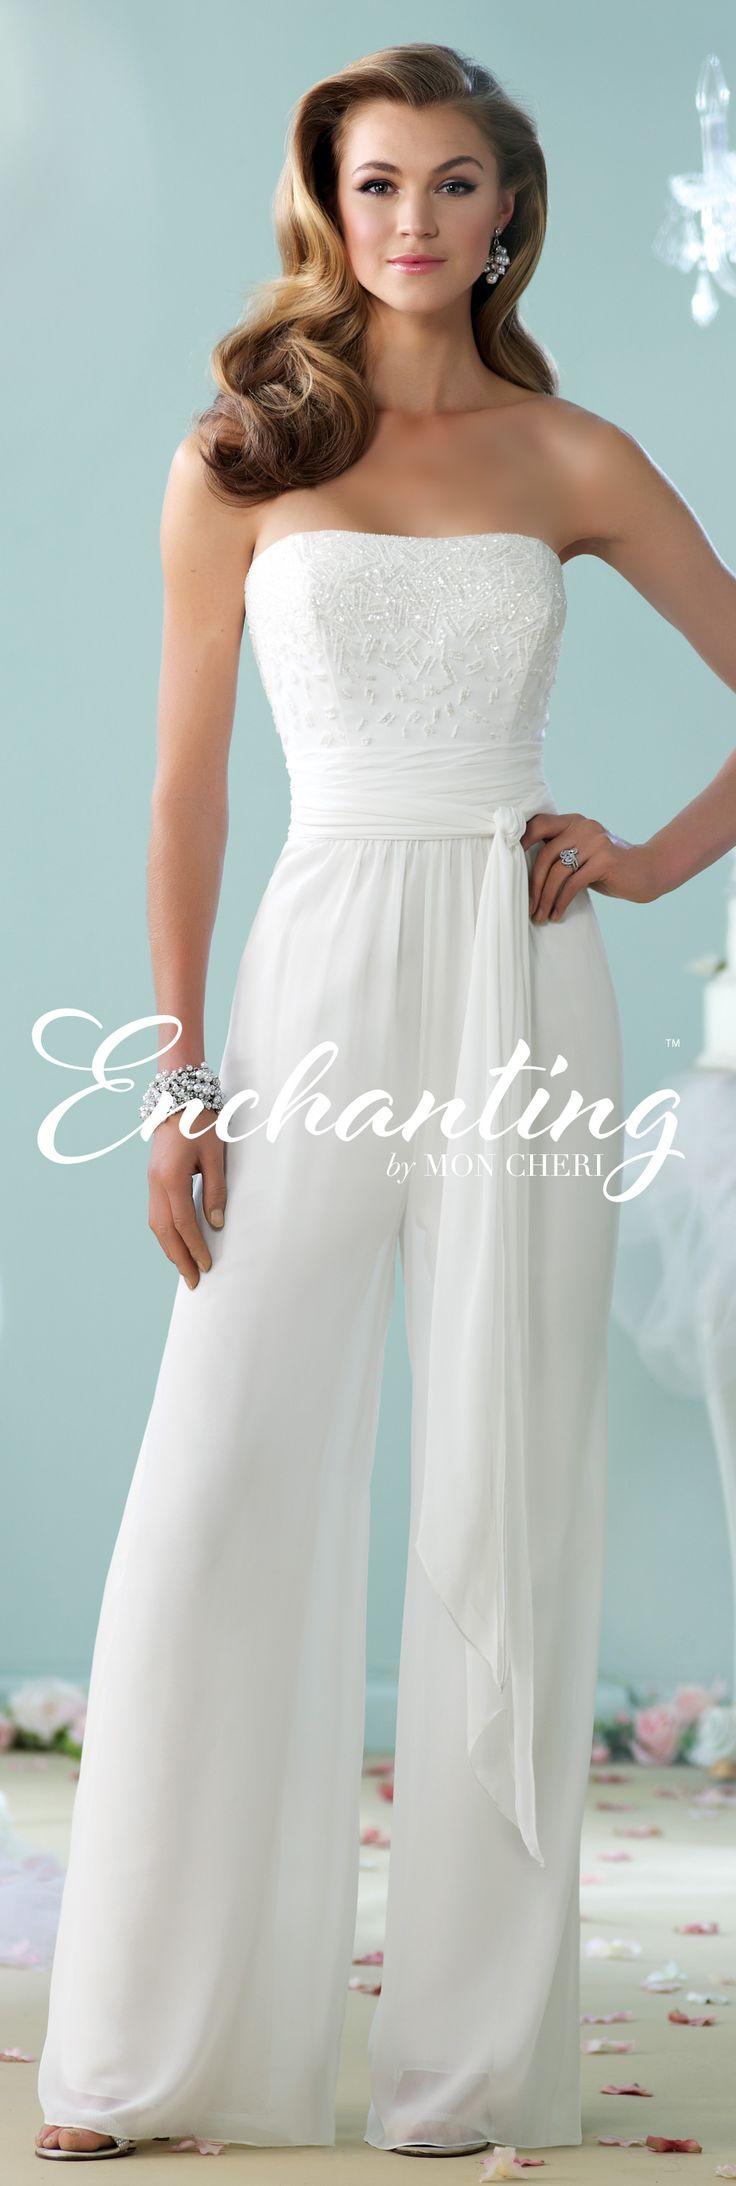 Enchanting by Mon Cheri - The Premiere Collection ~Style No. 215103 #whiteweddingjumpsuit